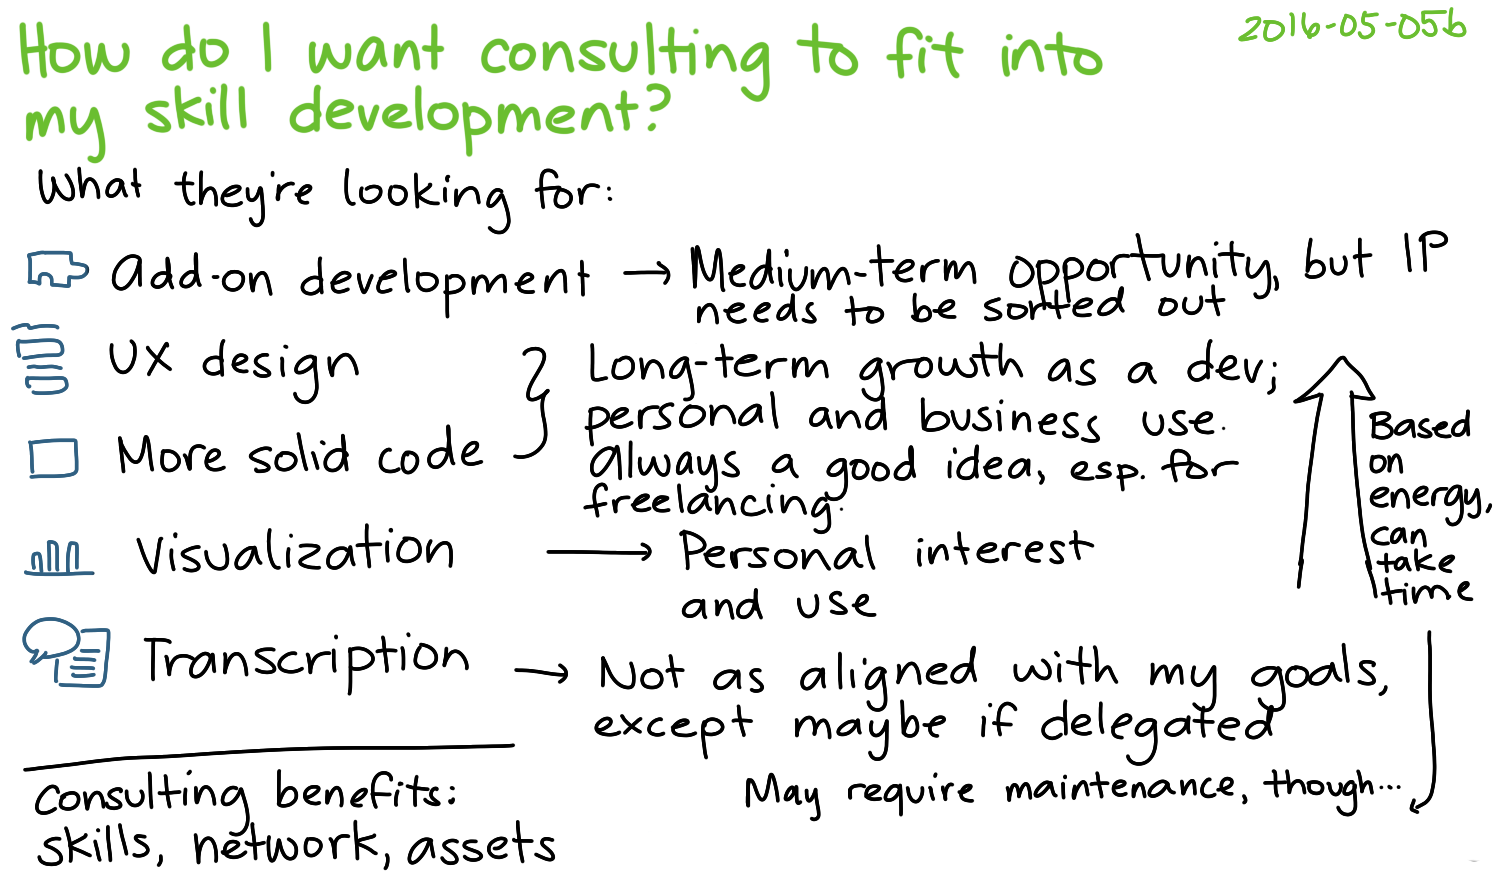 2016-05-05b How do I want consulting to fit into my skill development -- index card #my-learning #consulting #coding #experiment.png